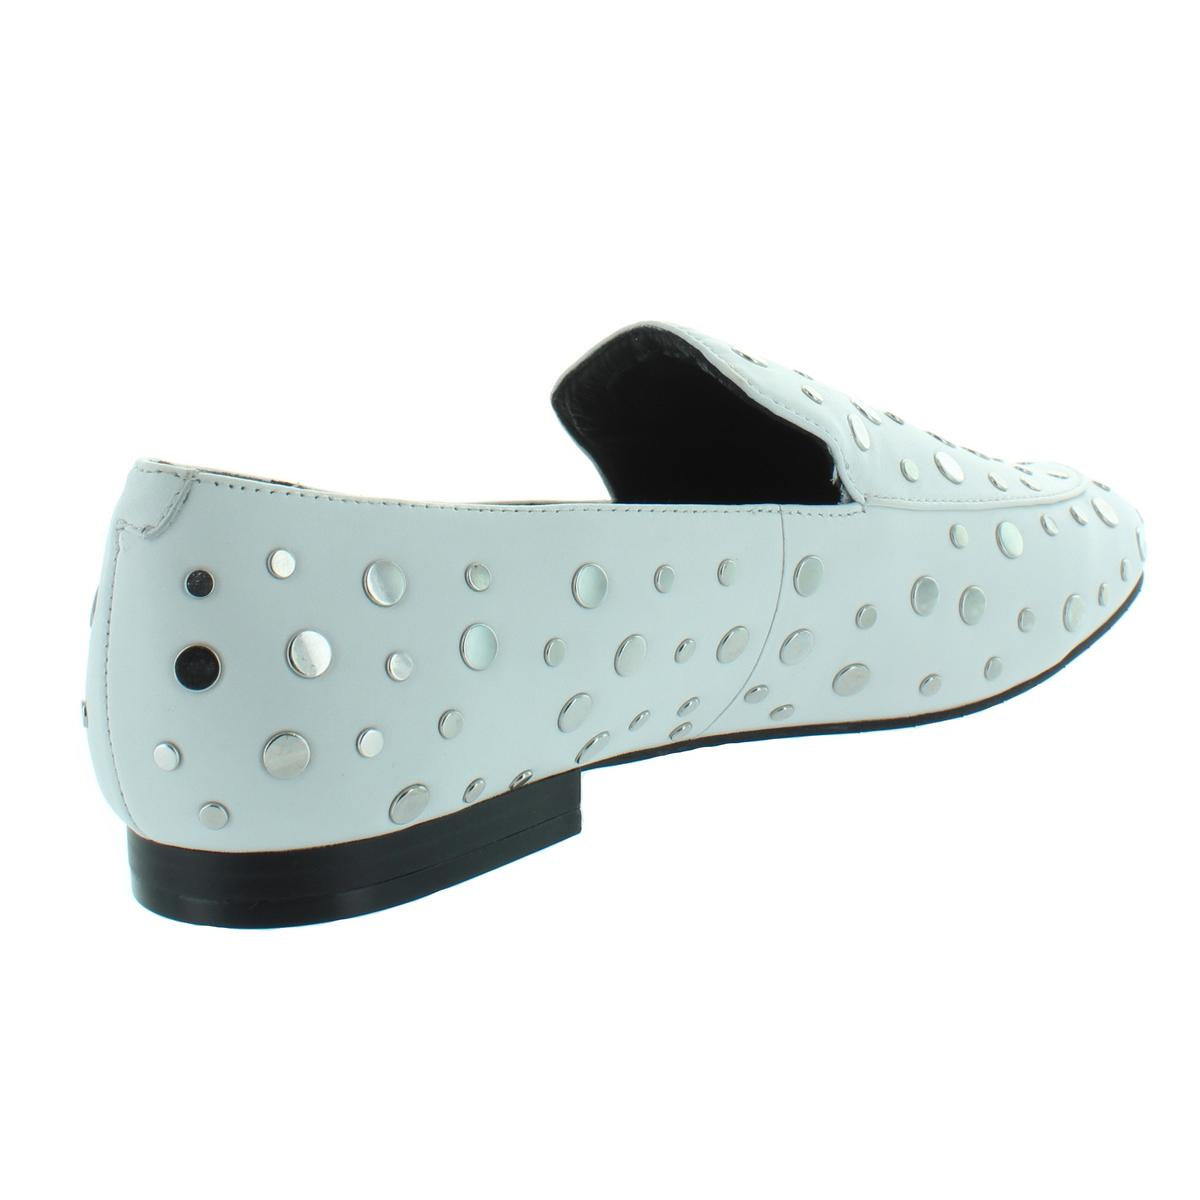 Kenneth-Cole-New-York-Womens-Westley-2-Studded-Leather-Loafers-Shoes-BHFO-0897 thumbnail 6